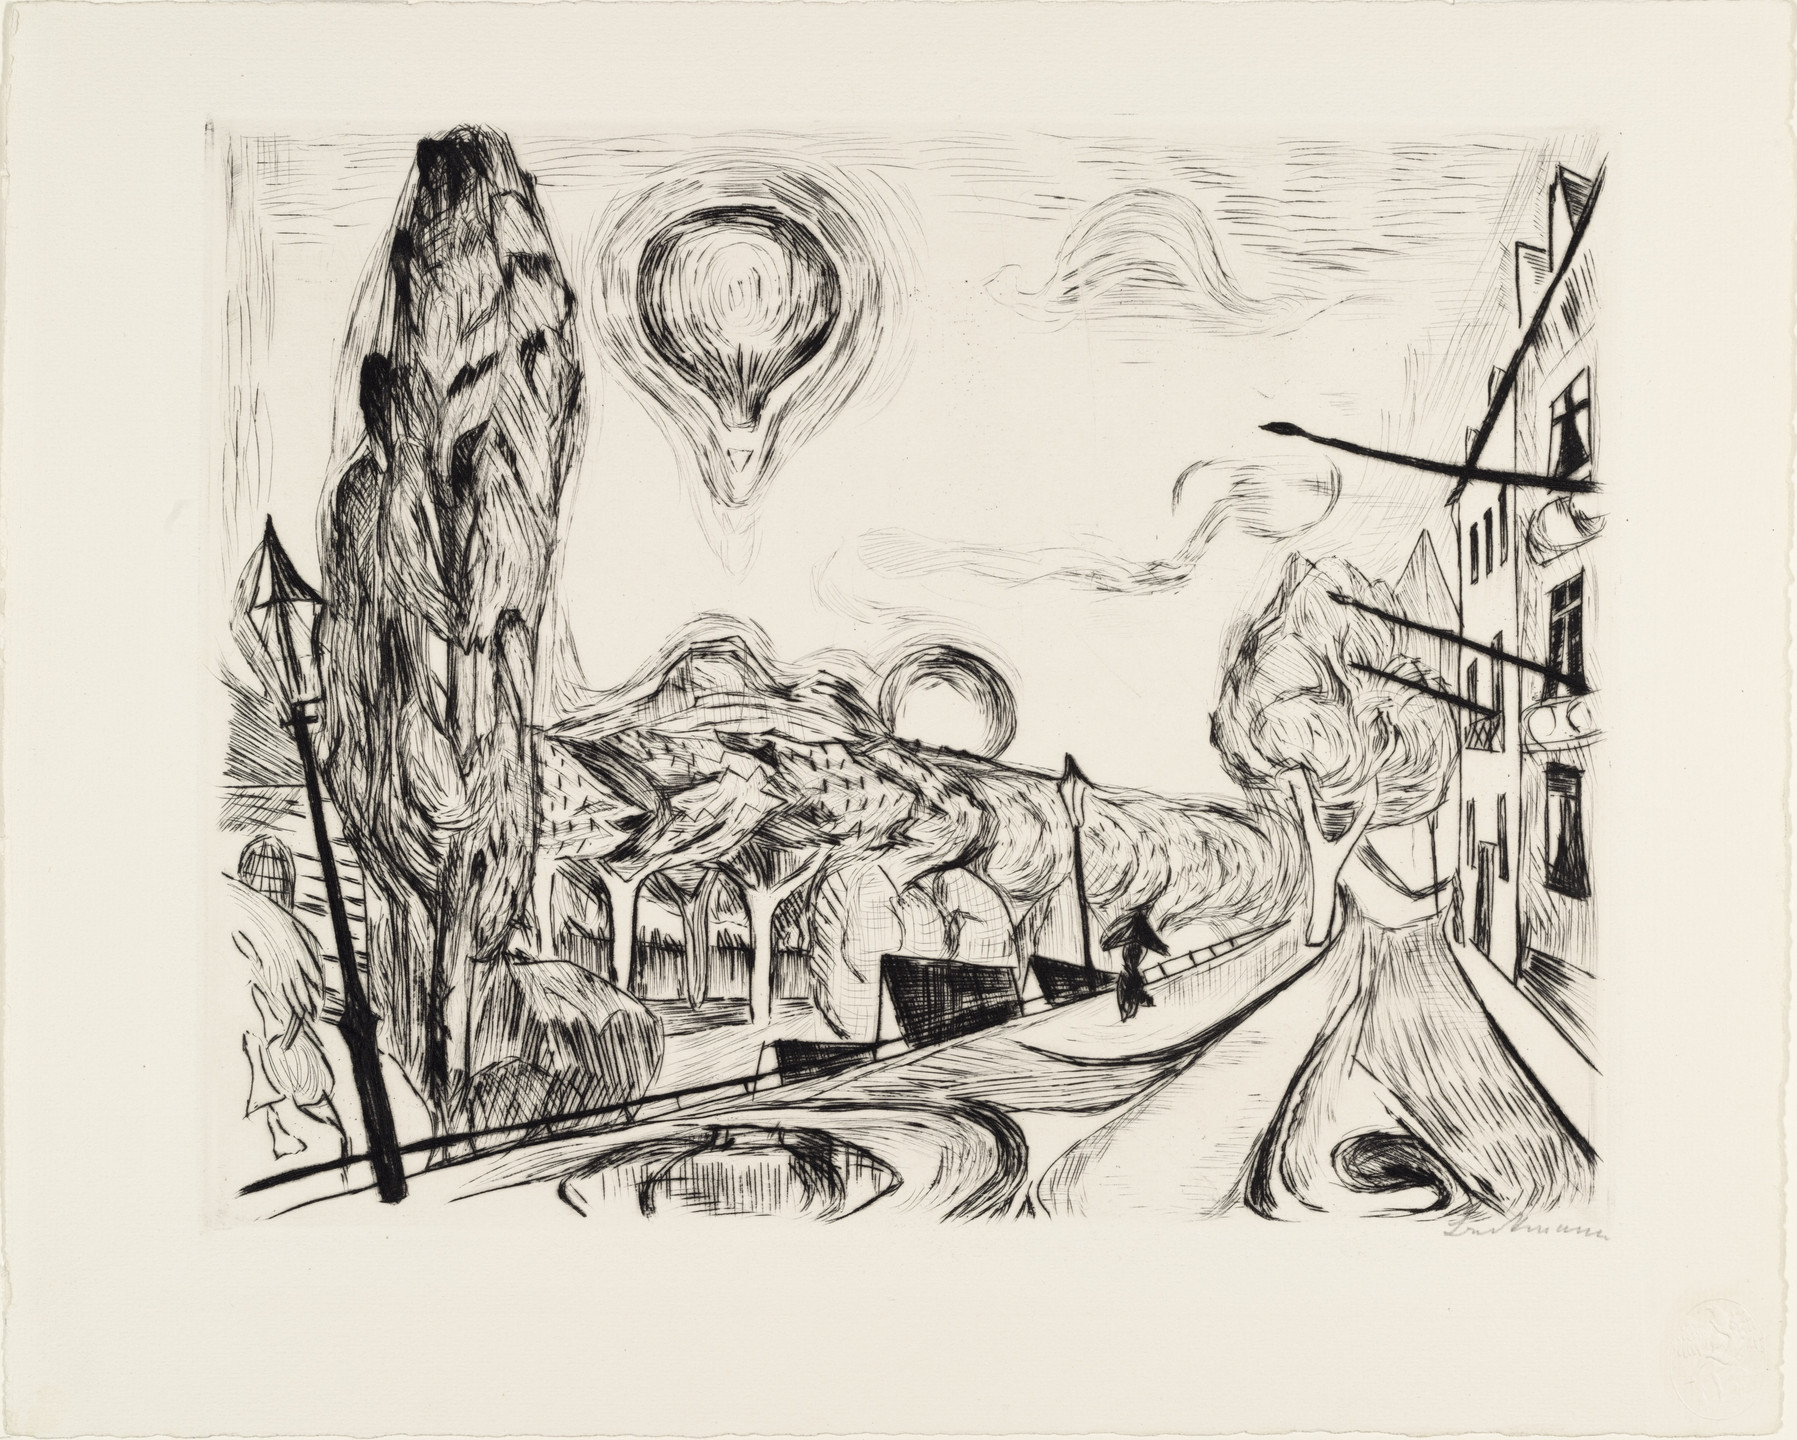 Max Beckmann. Landscape with Balloon (Landschaft mit Ballon) from Faces (Gesichter). (1918, published 1919)